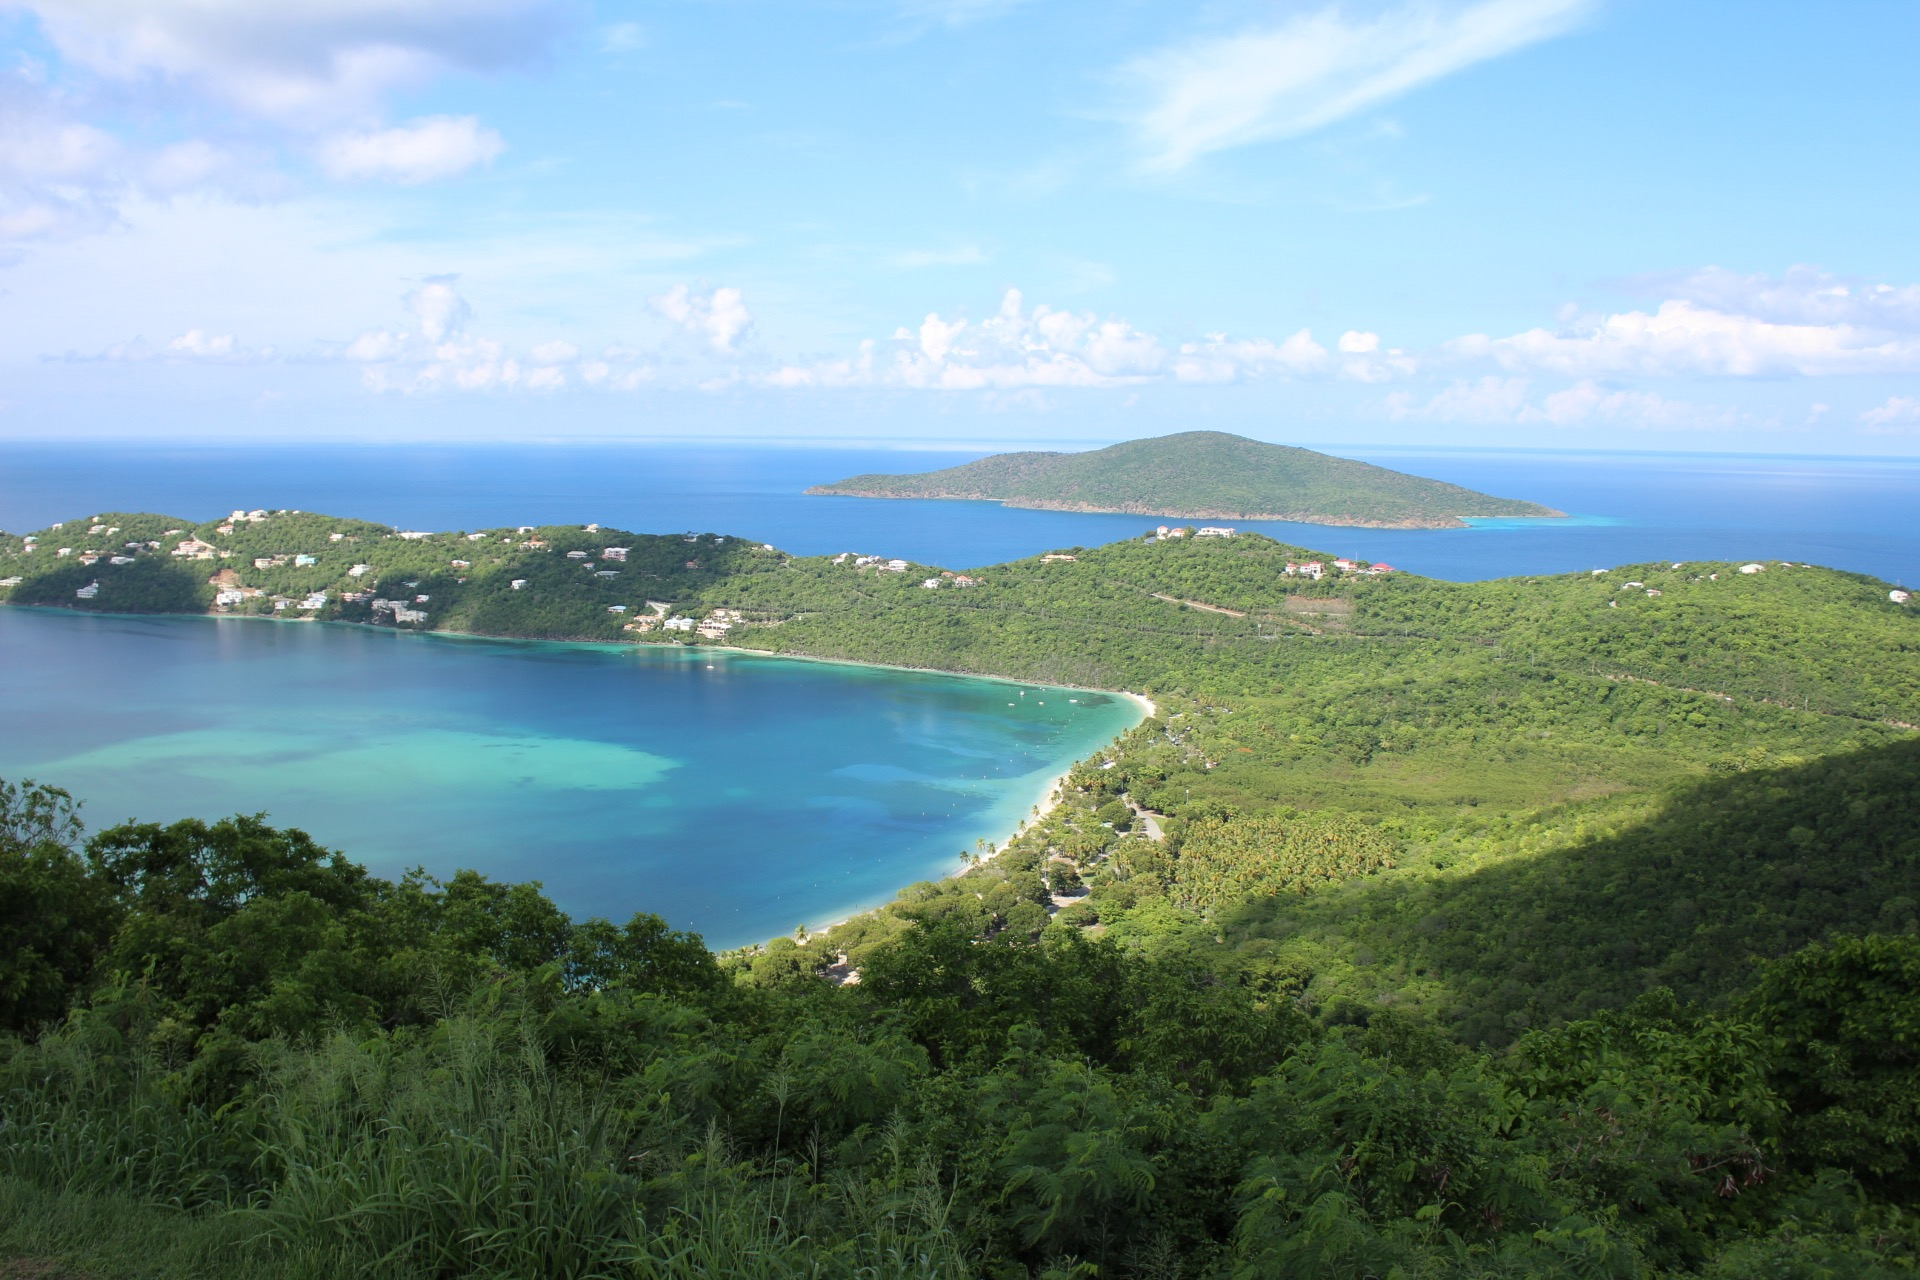 drakes seat st thomas jeep tour off road